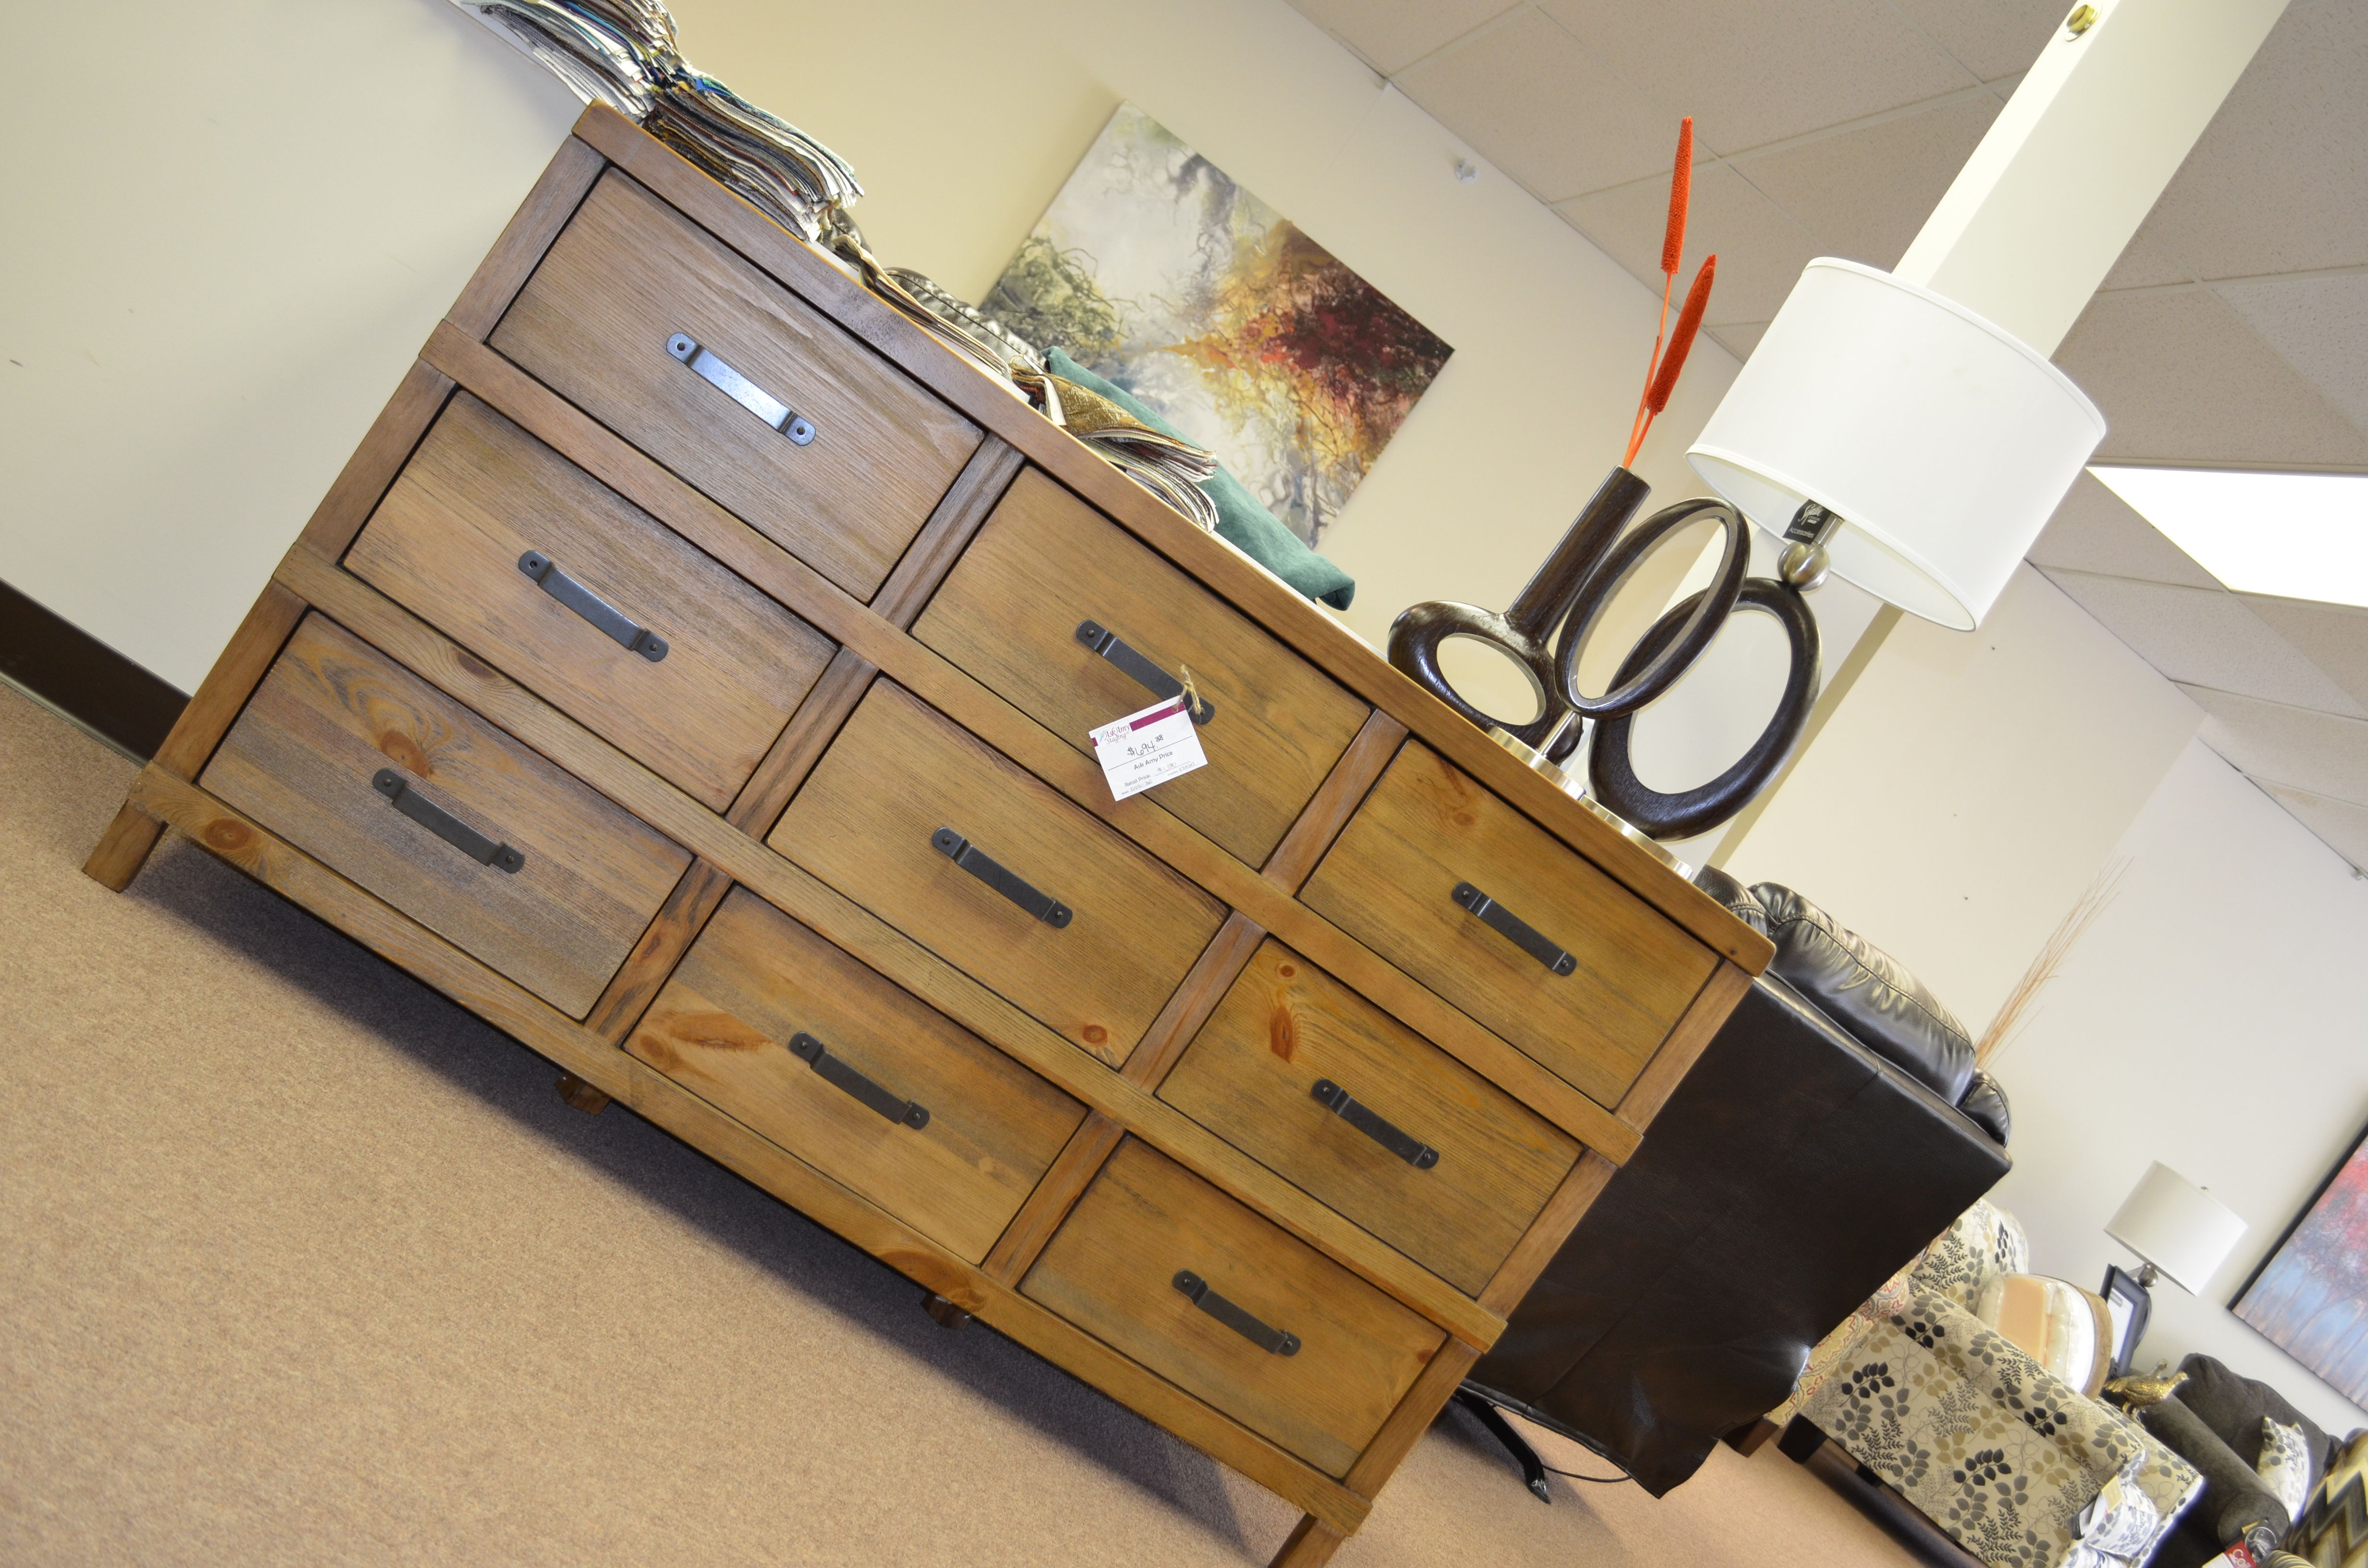 New piece on our showroom floor. Only $694.38. All drawers open for great storage. This would be a great piece in a dining room, entry way or even as an entertainment stand! www.askamystaging.com